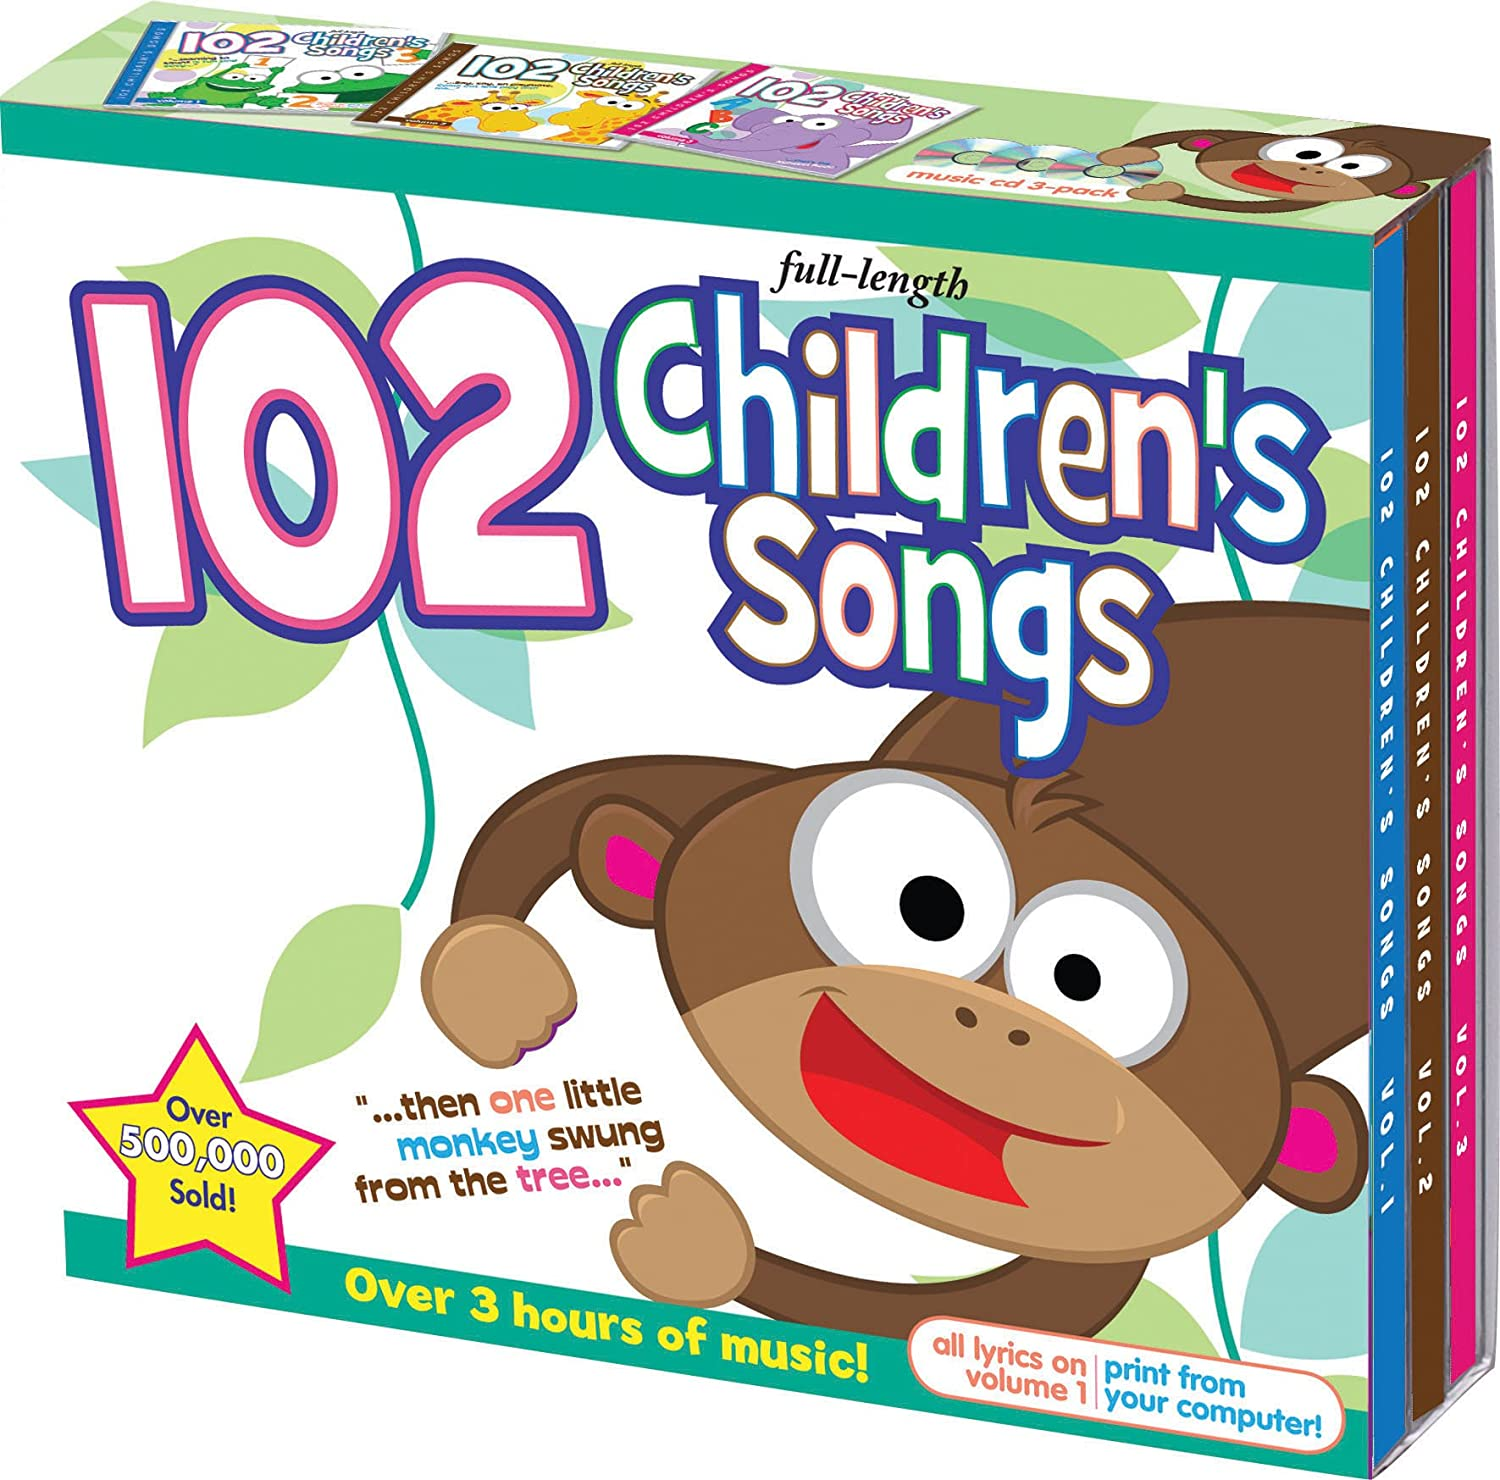 Twin Sisters Productions - 102 Children's Songs 3 CD Set - Amazon.com Music